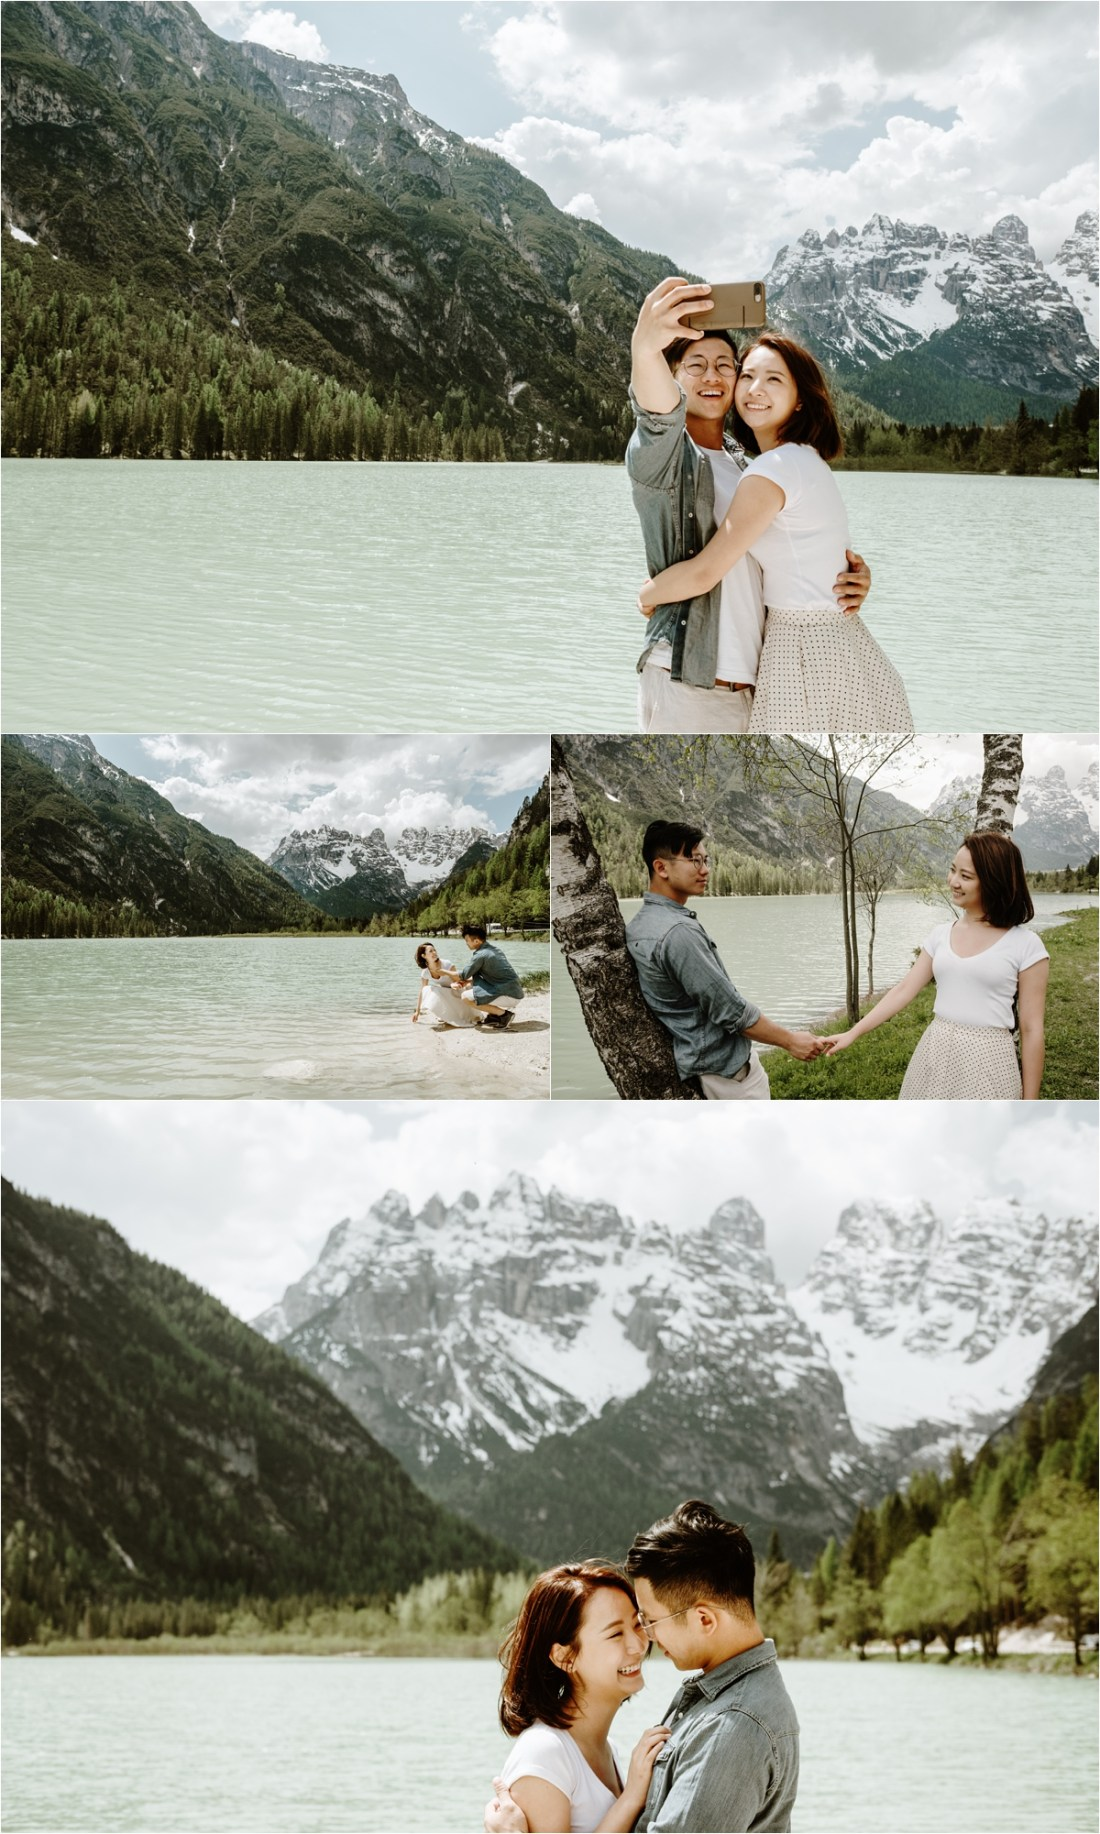 Chinese couple take selfie at a lake in the Dolomites. Photo by Wild Connections Photography